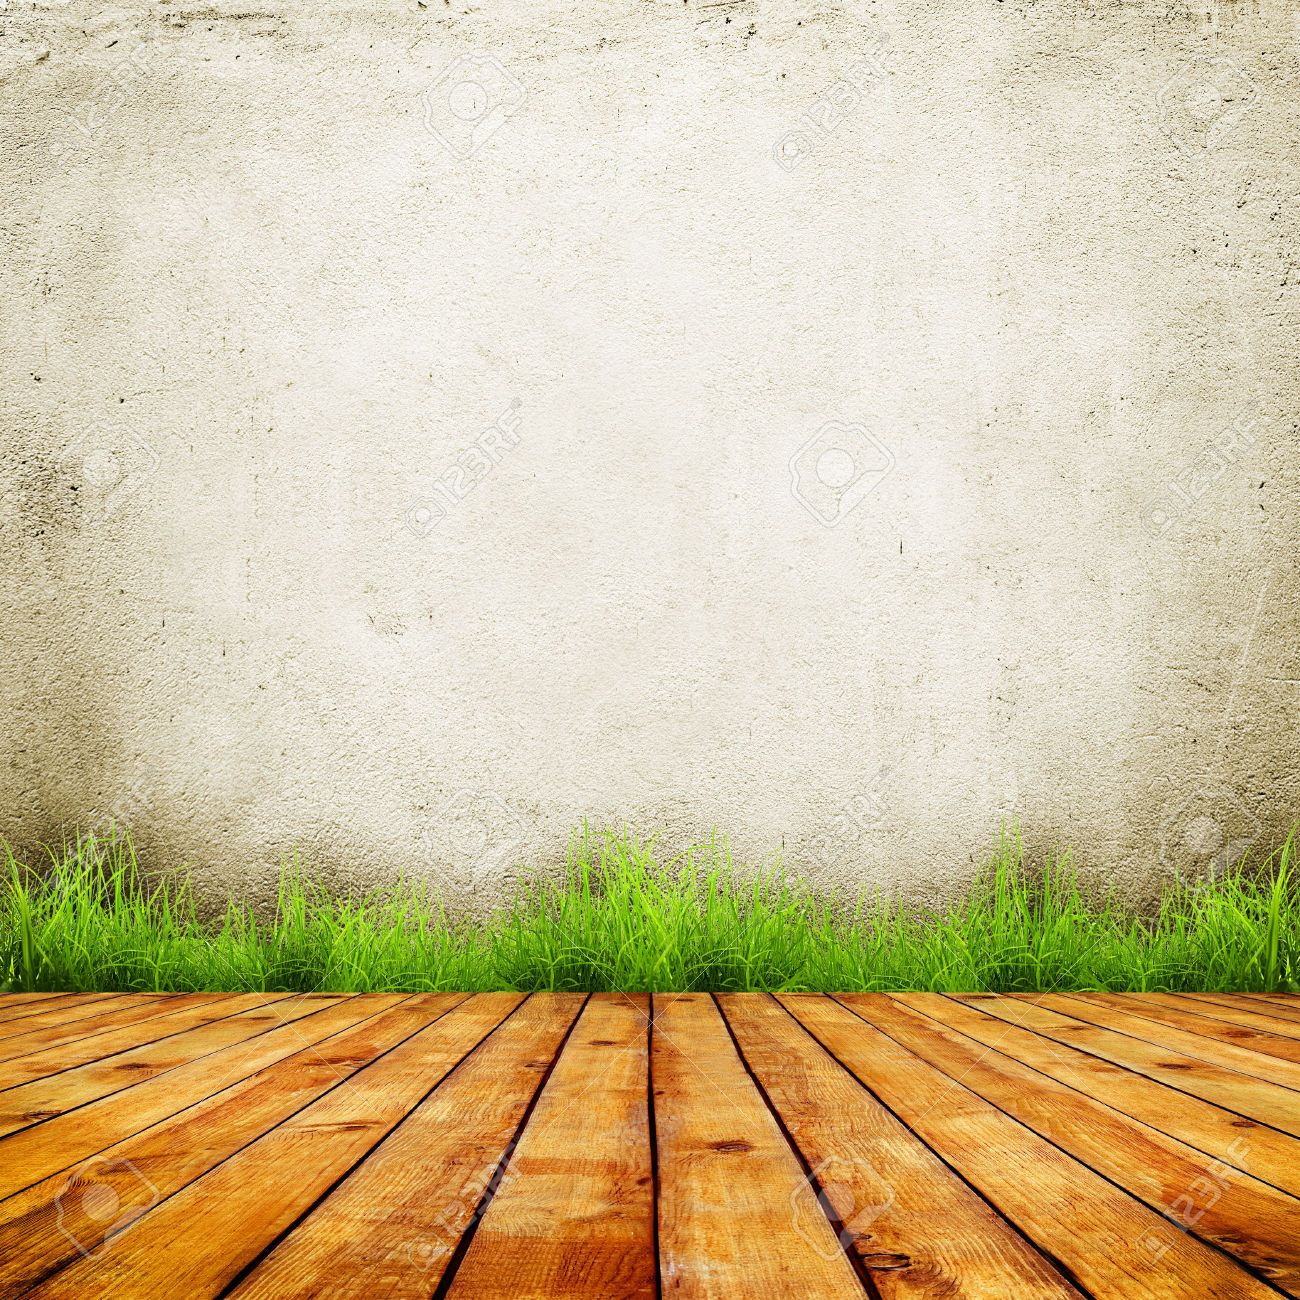 Wood Floor Background WB Designs - Wood Floor And Wall Background